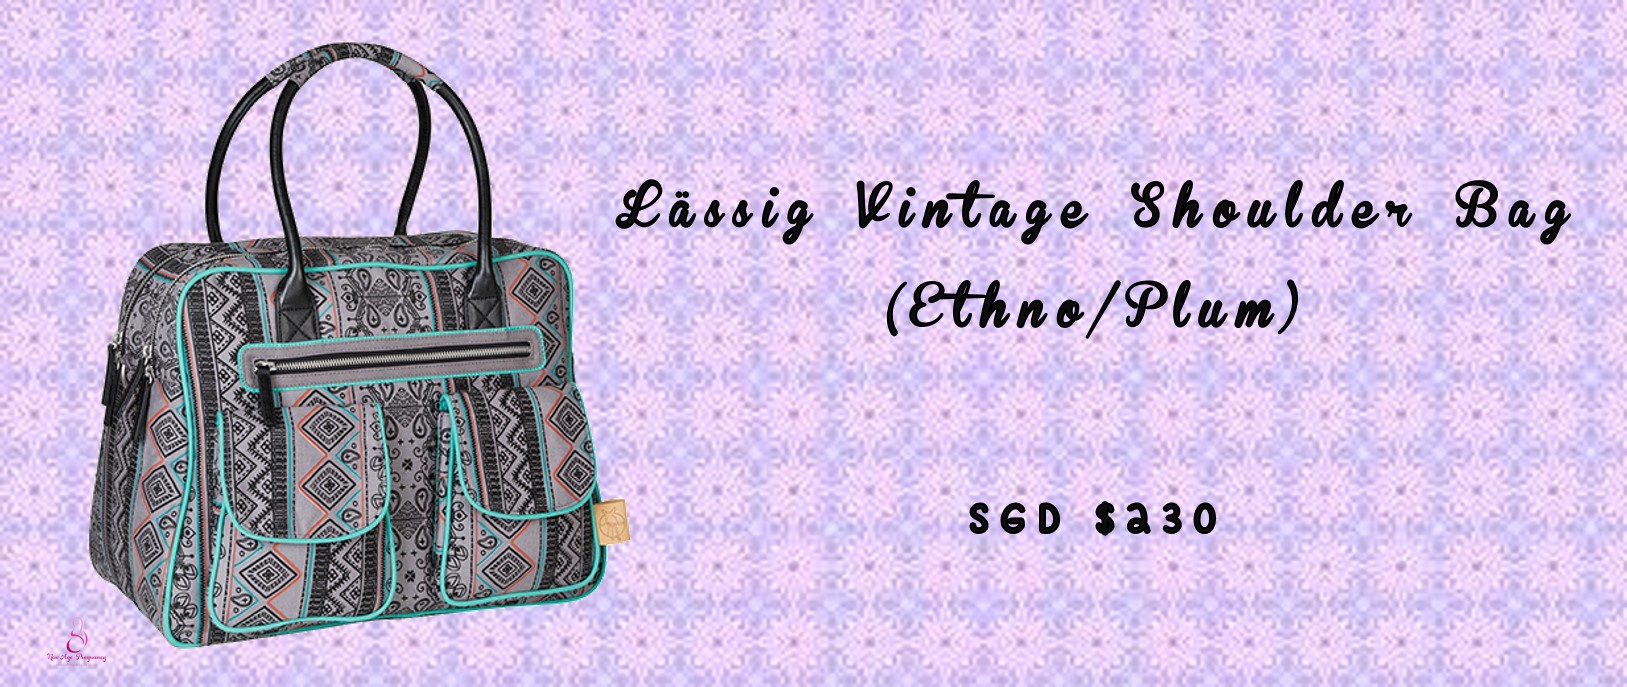 Lässig Vintage Shoulder Bag (Ethno/Plum)